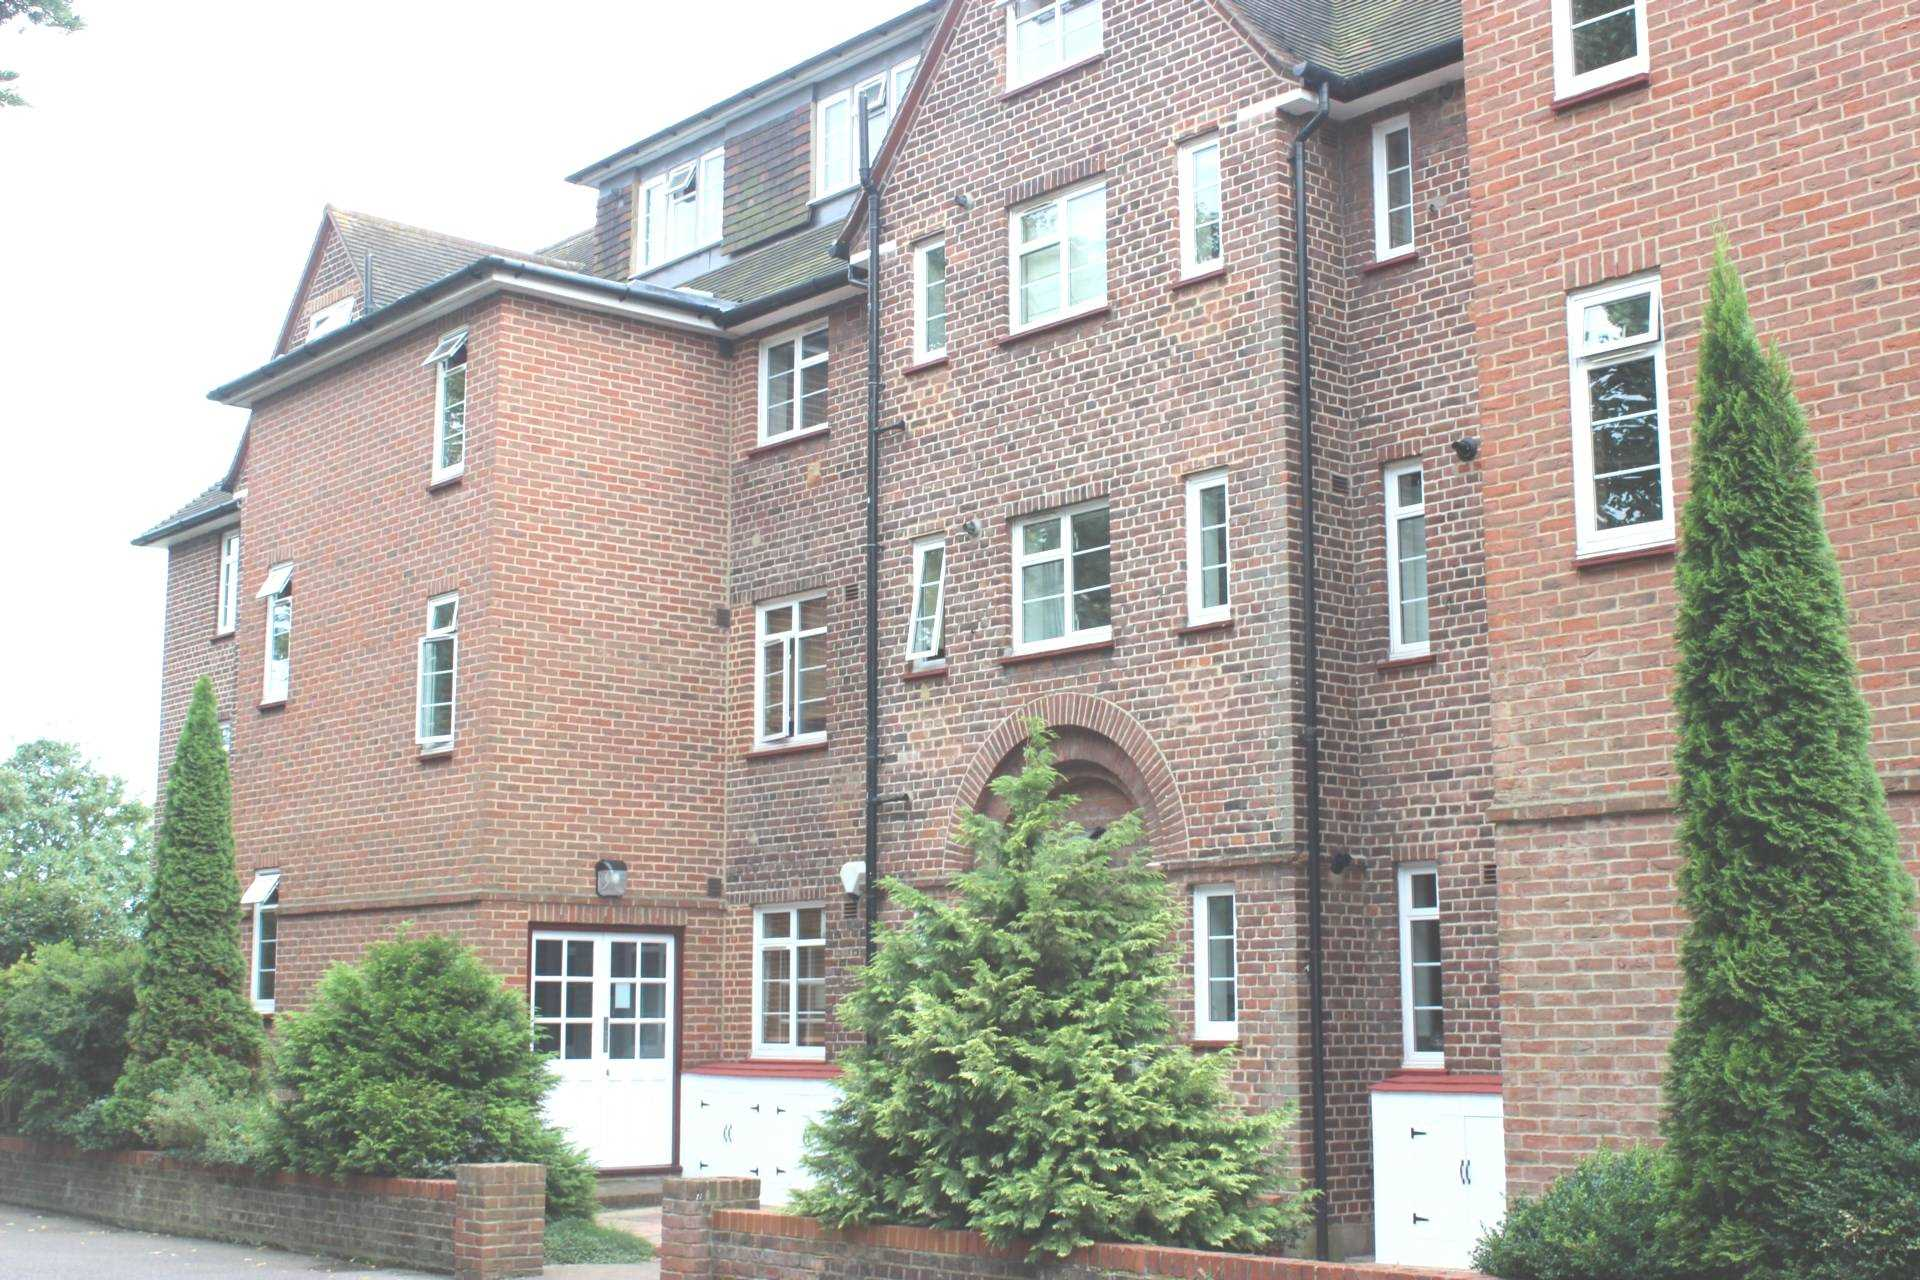 2 Bedroom Apartment To Rent Tyler House Wat Tyler Road London Se3 0rf